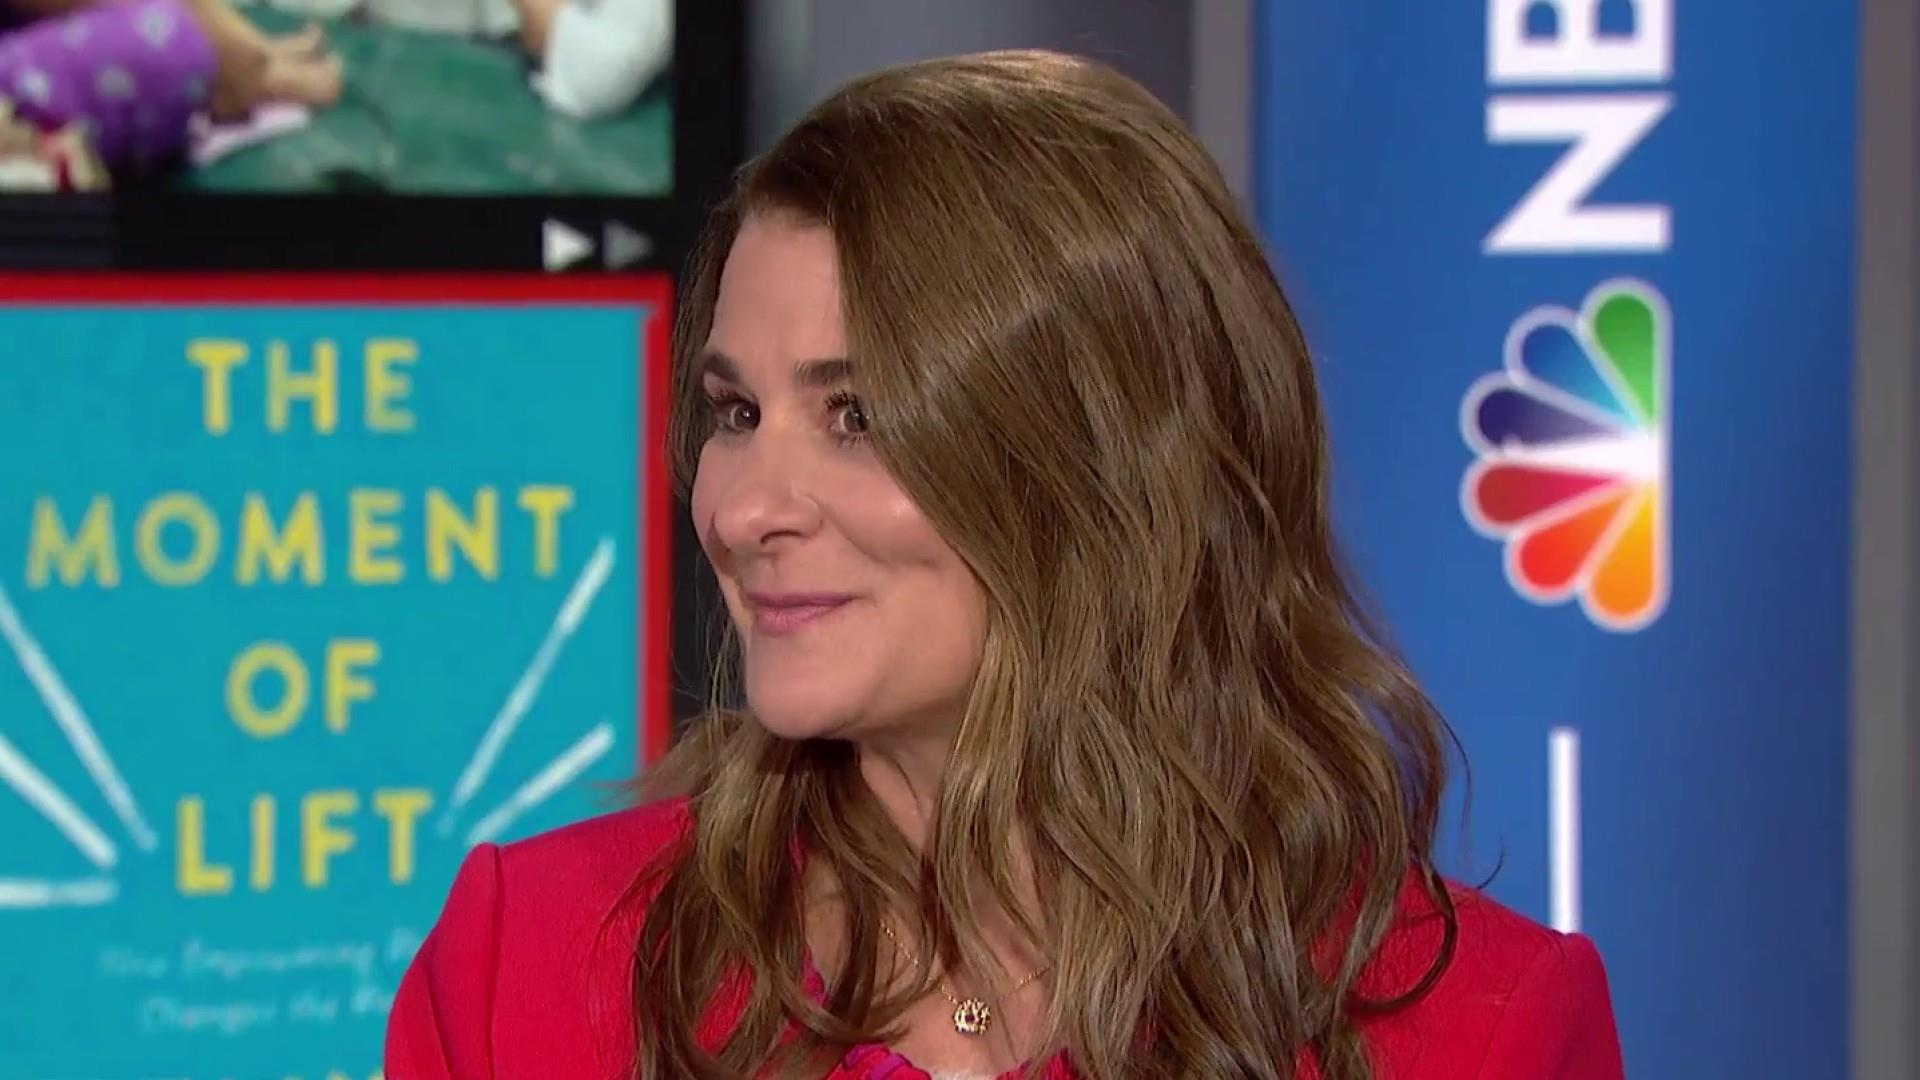 Melinda Gates explores women and unpaid and domestic labor